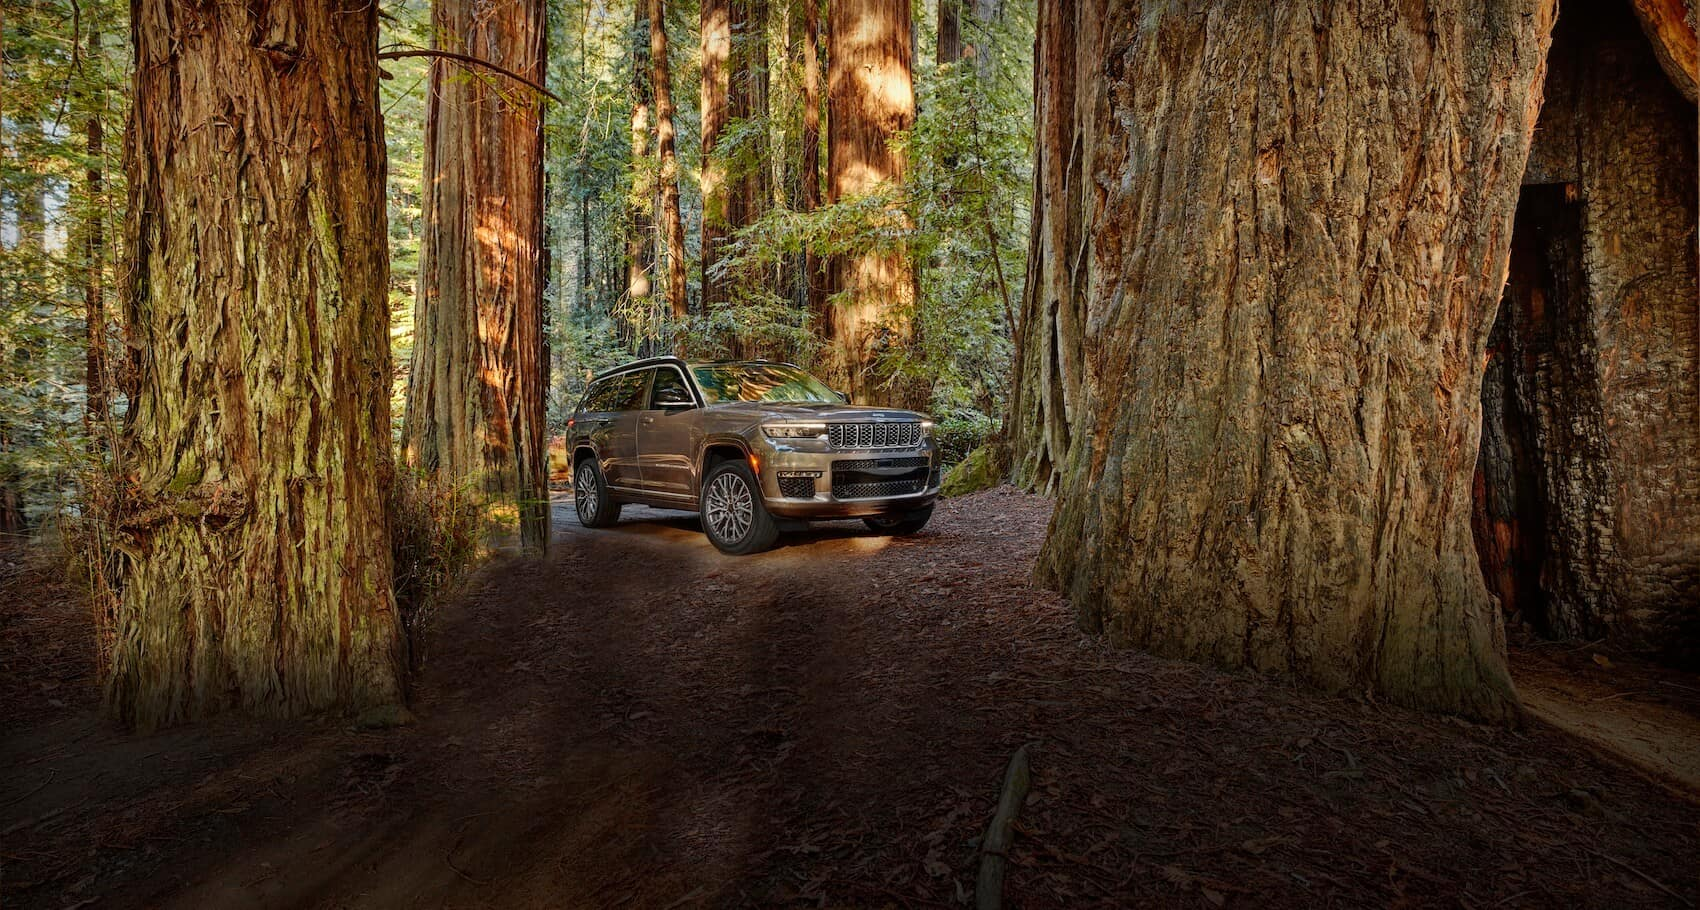 Jeep Grand Cherokee In Forrest